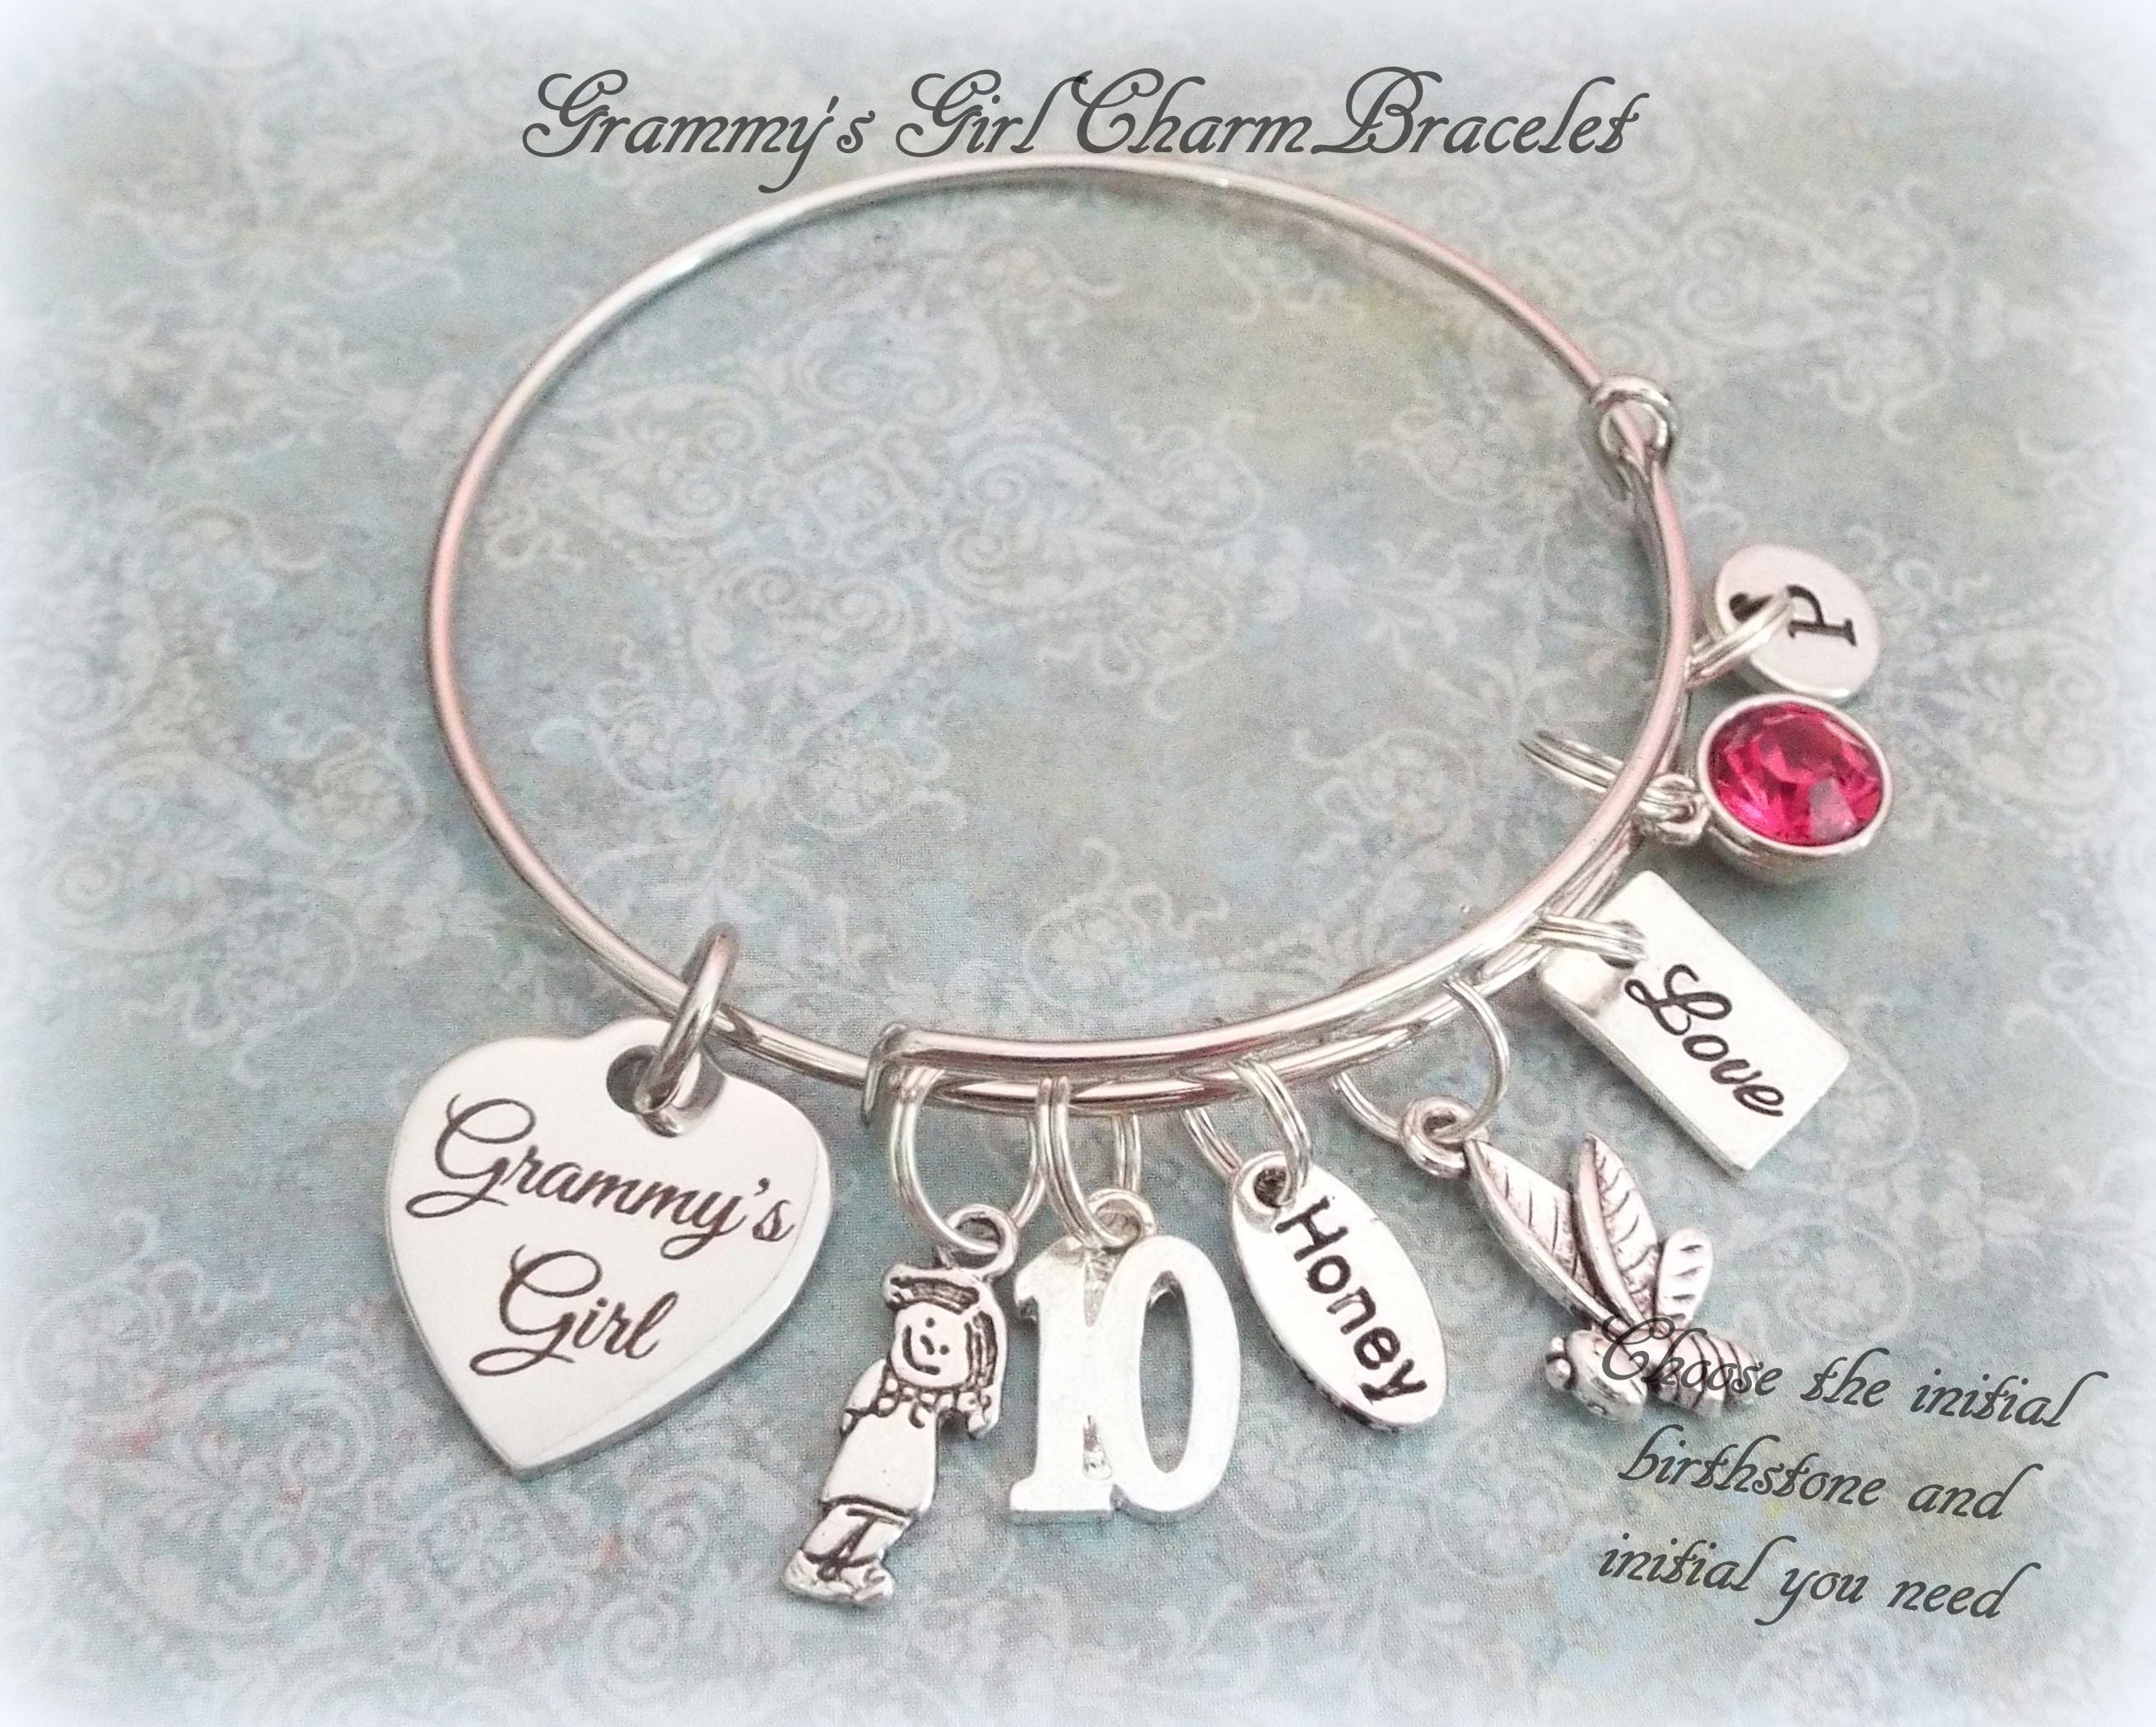 Gift Idea For Granddaughter 10th Birthday Charm Bracelet Happy 10 Year Old Girl